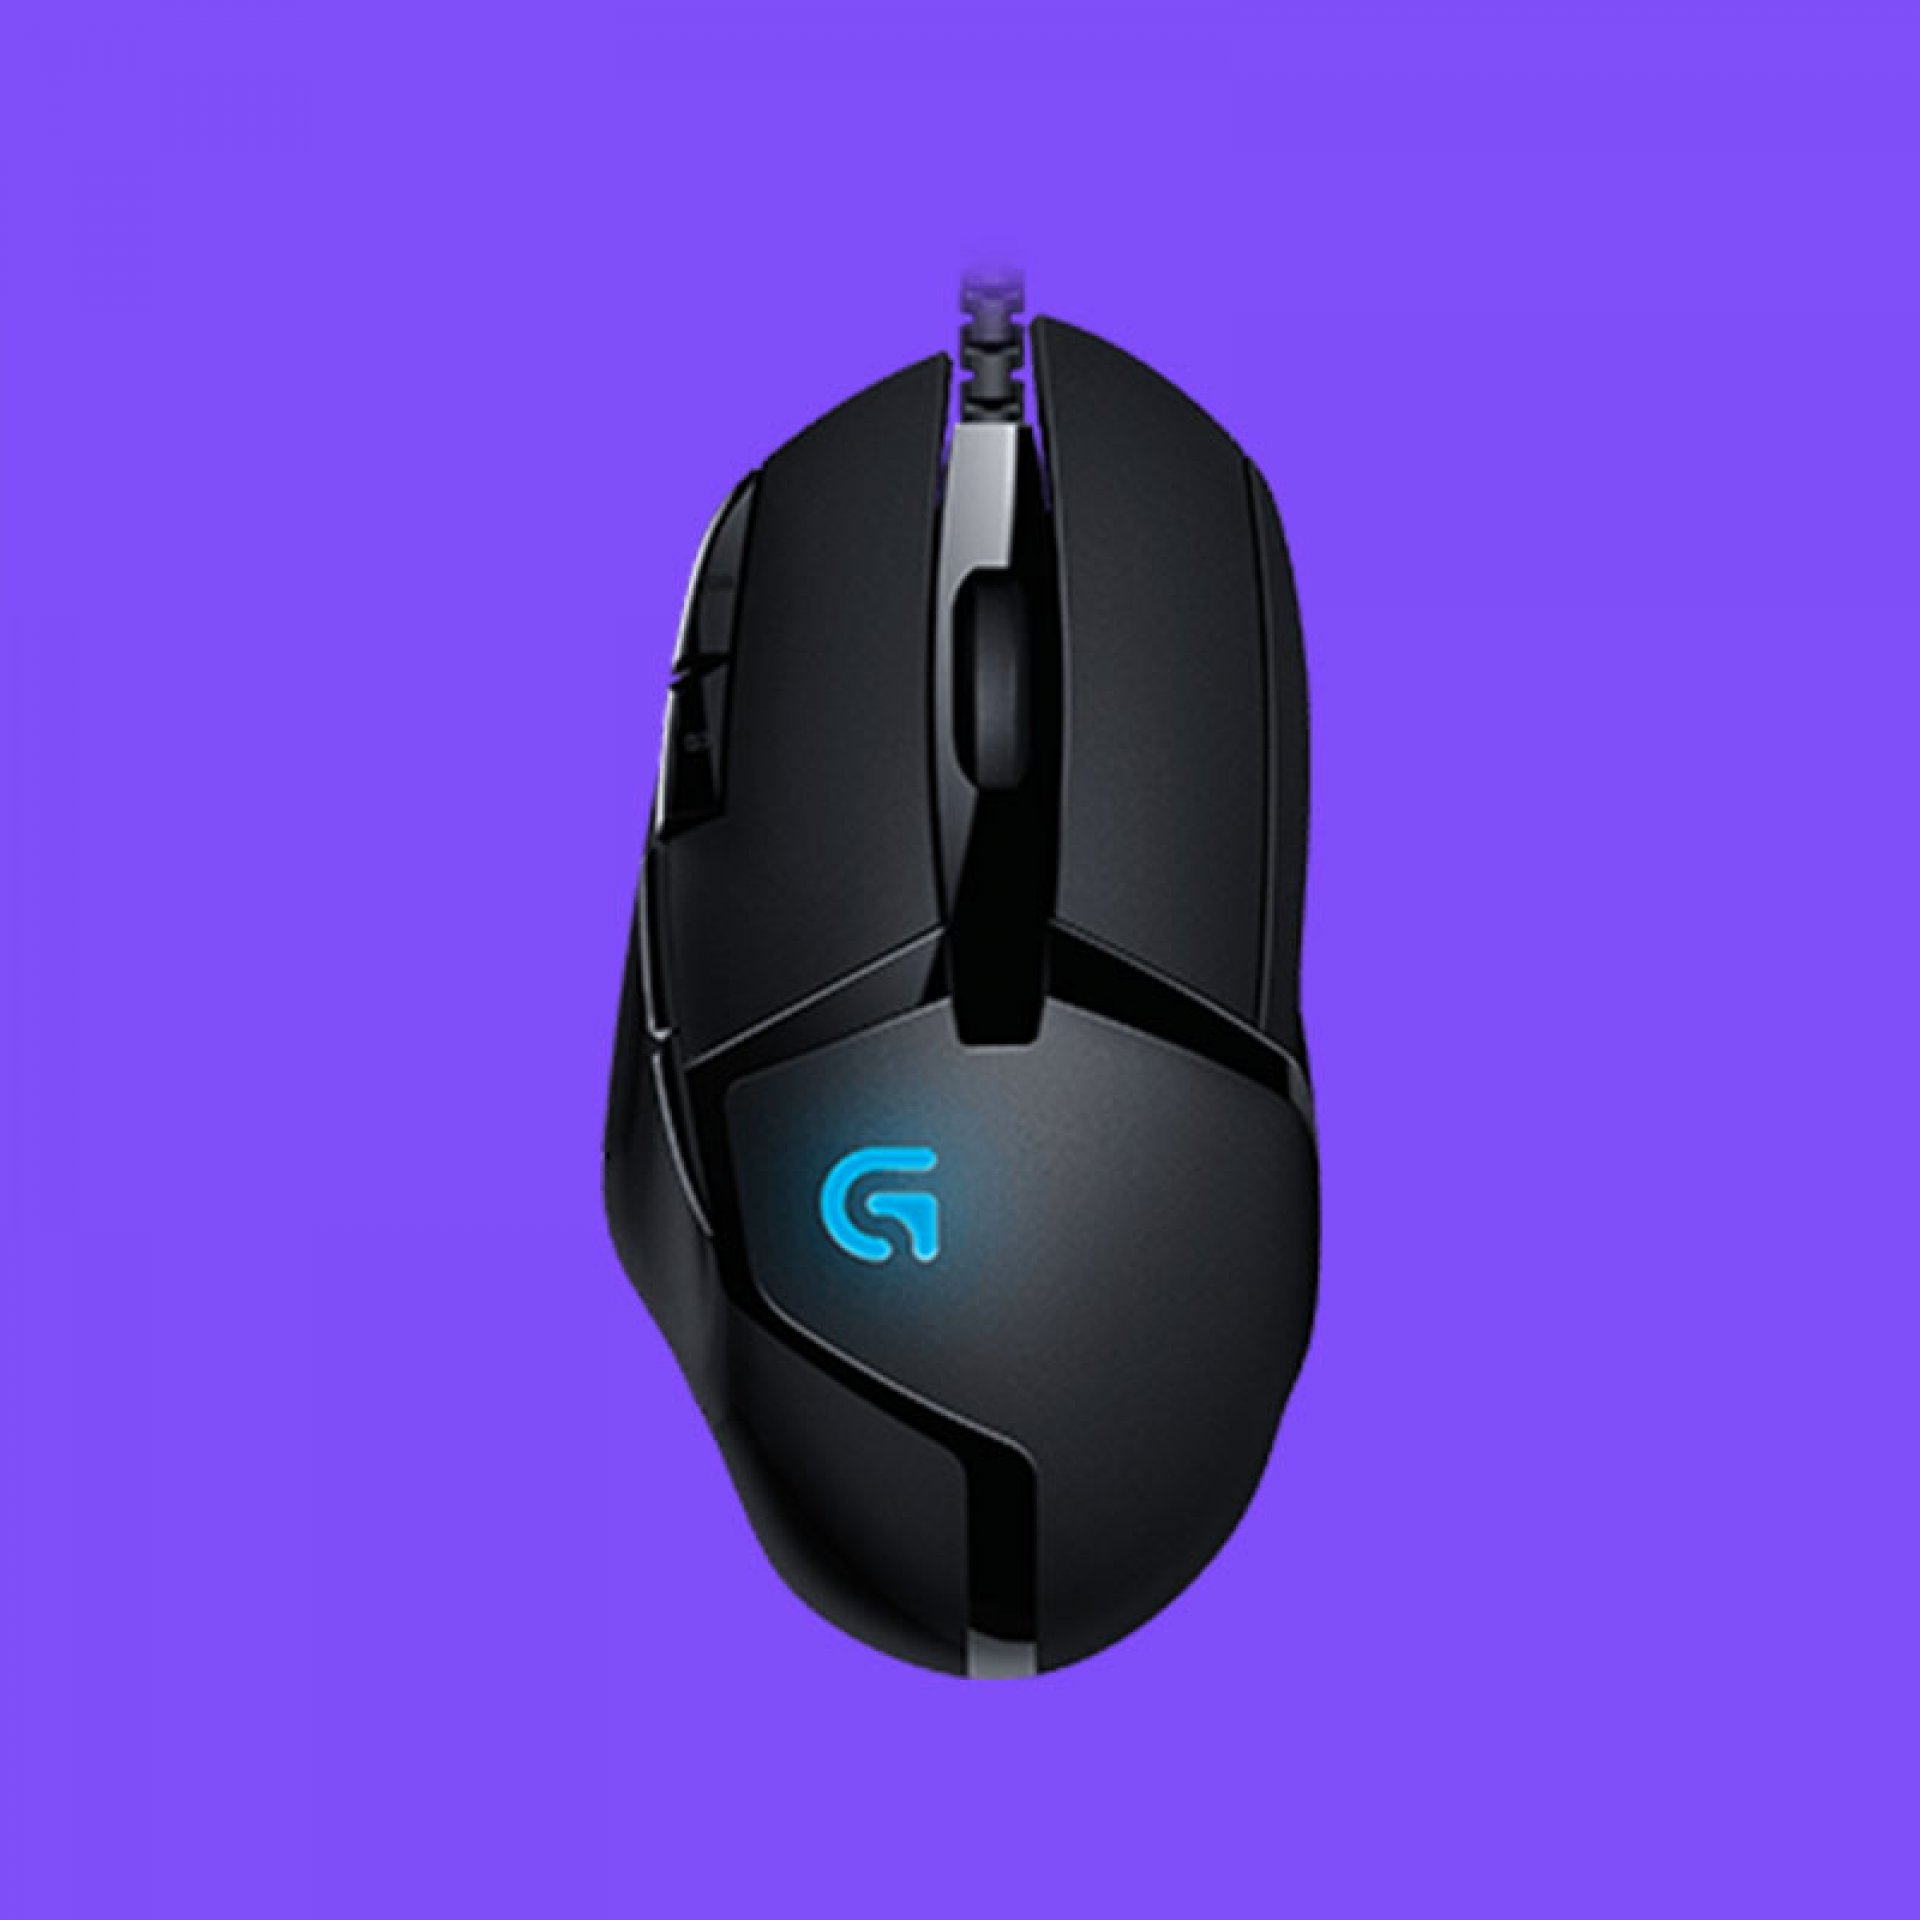 LOGITECH G402 HYPERION FURY Wired Gaming Mouse - (4000 Dpi, Optical Sensor, 1000 Hz Polling Rate)